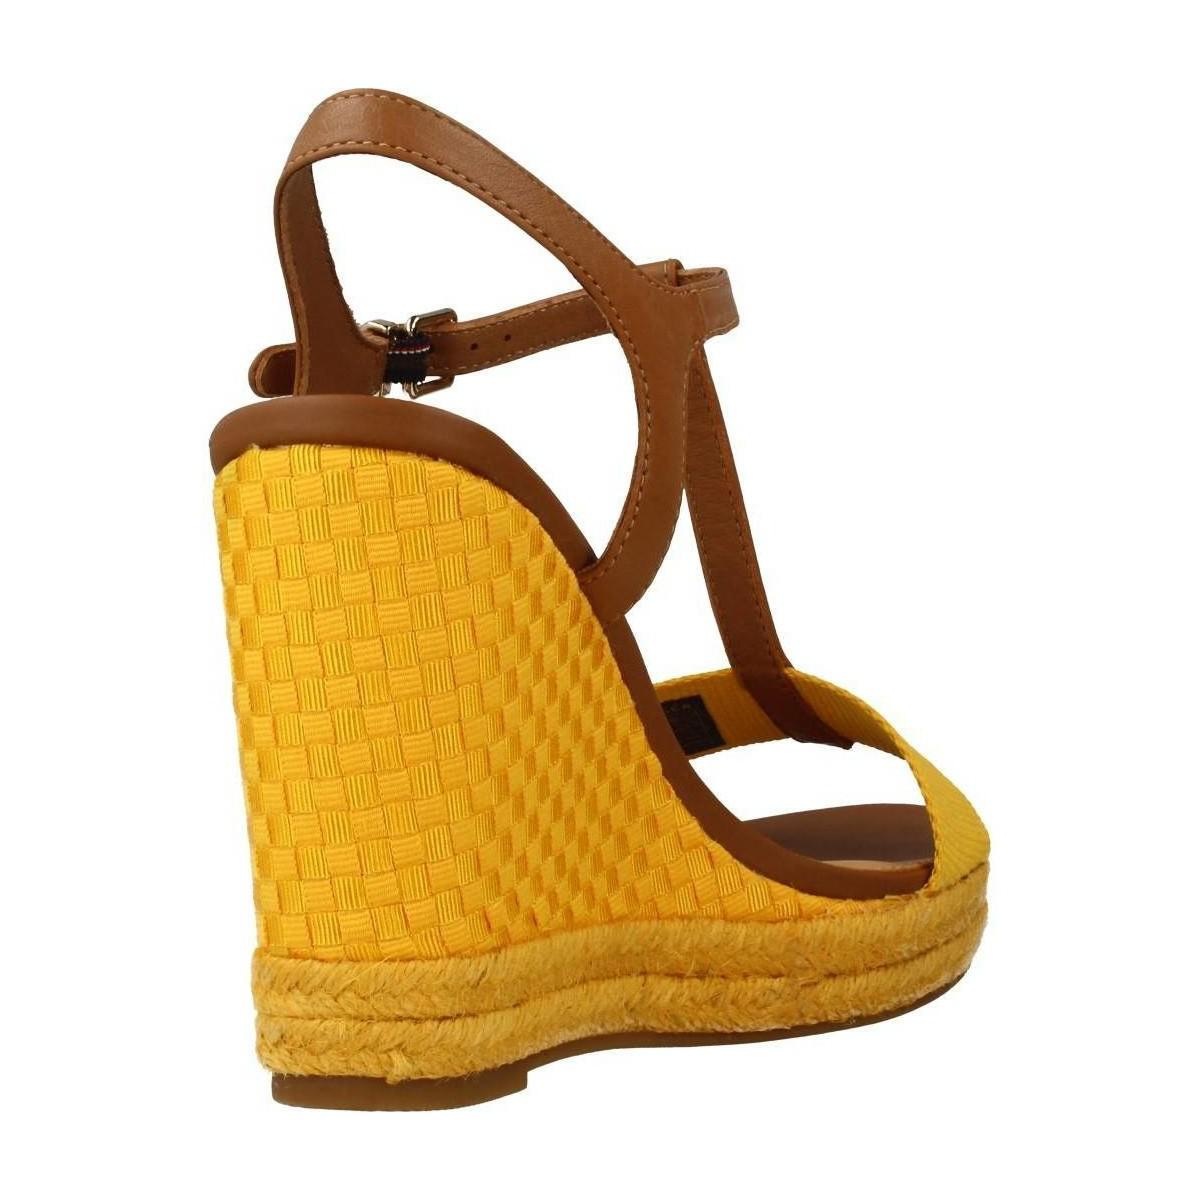 cd1d7f2ad0541 Tommy Hilfiger Fw0fw02249 Women s Sandals In Yellow in Yellow - Lyst